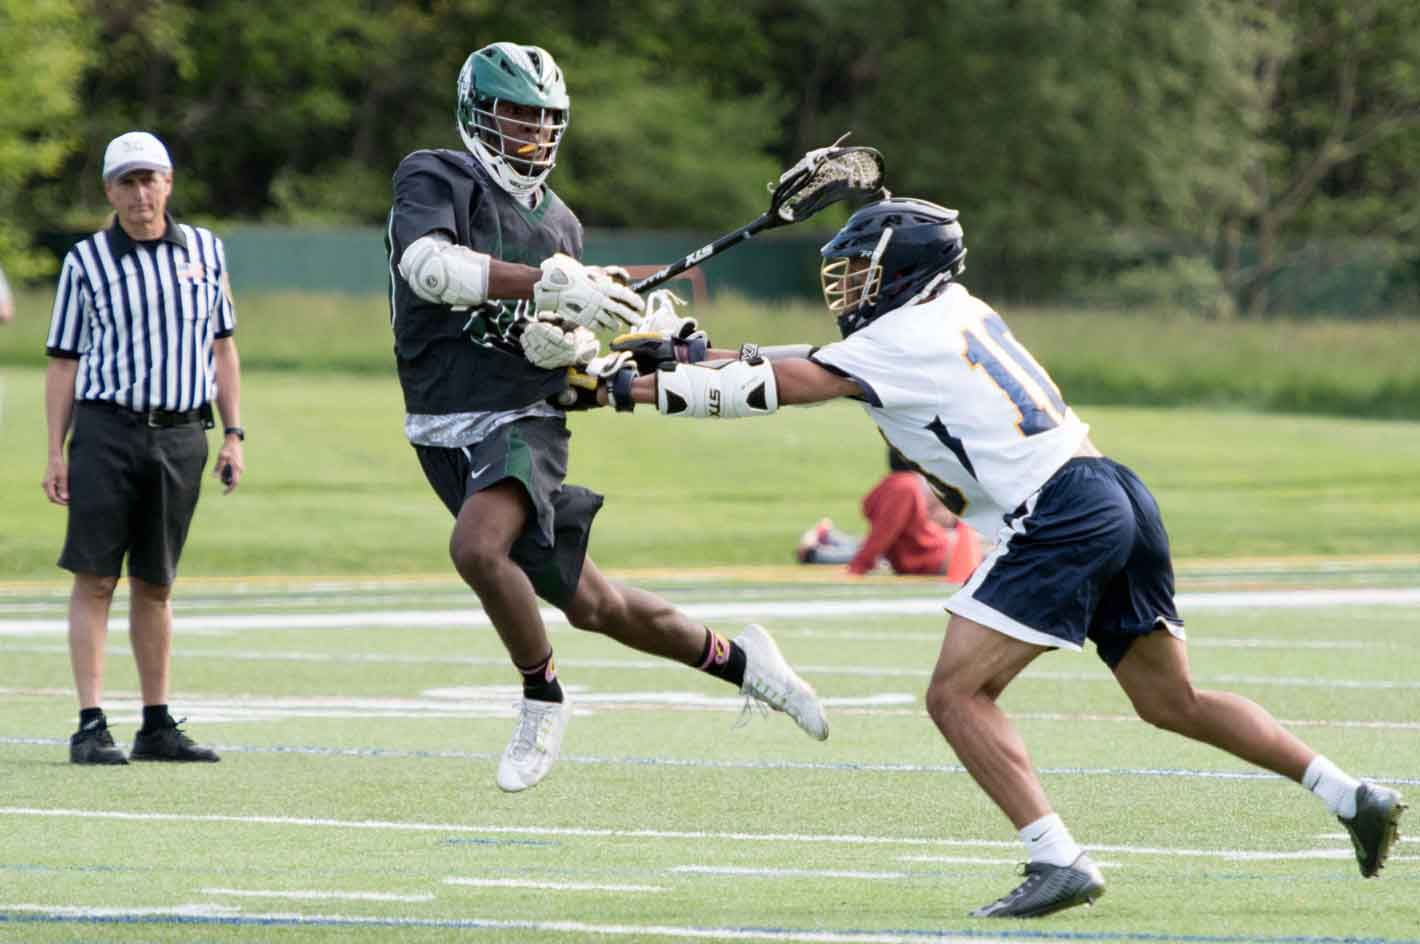 CT.,High school Boys Lacrosse team New Haven